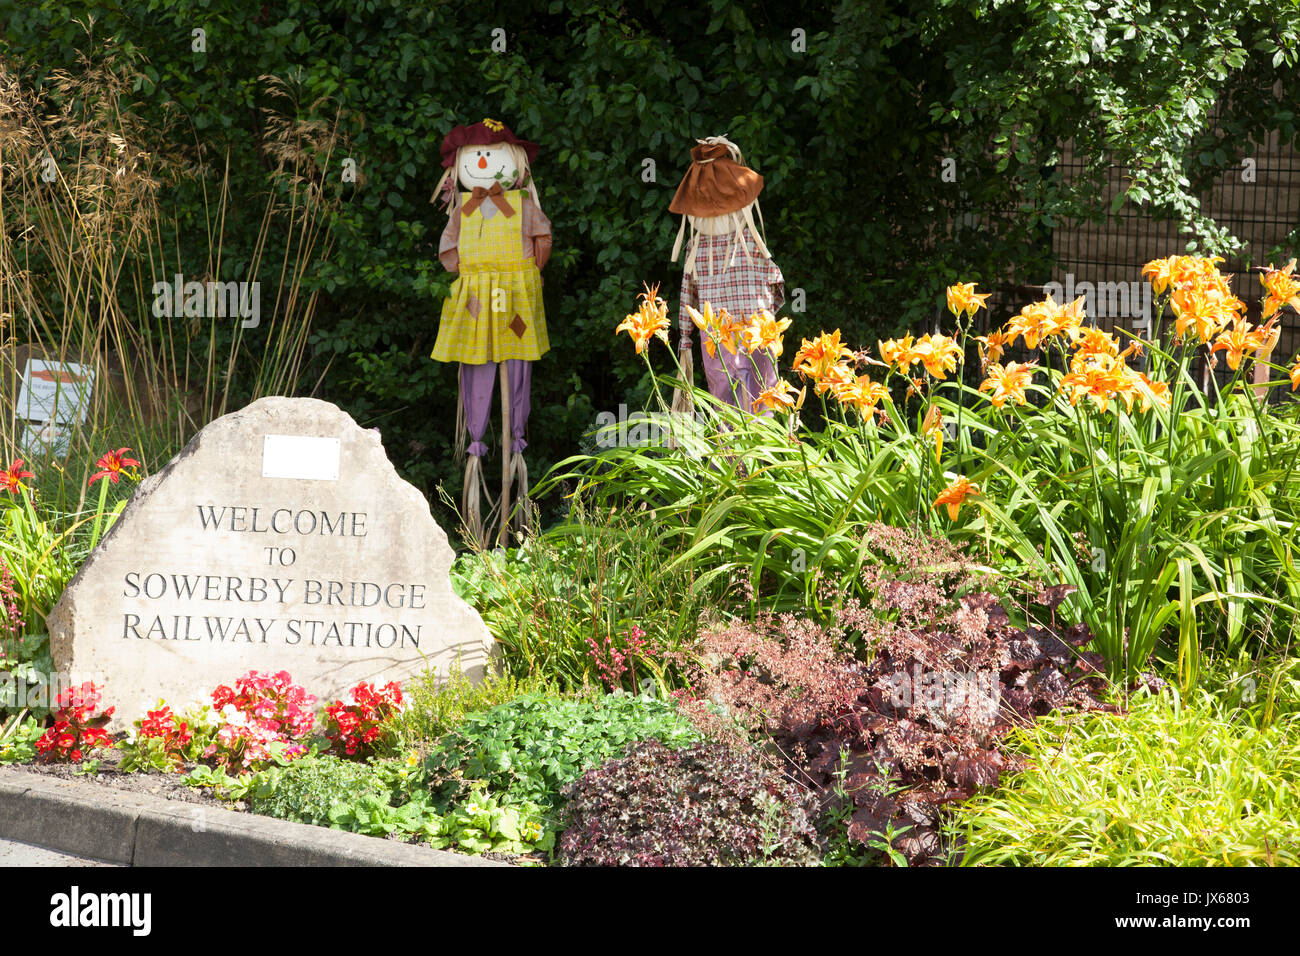 The Brontë Garden at the railway station, Sowerby Bridge, West Yorkshire - Stock Image